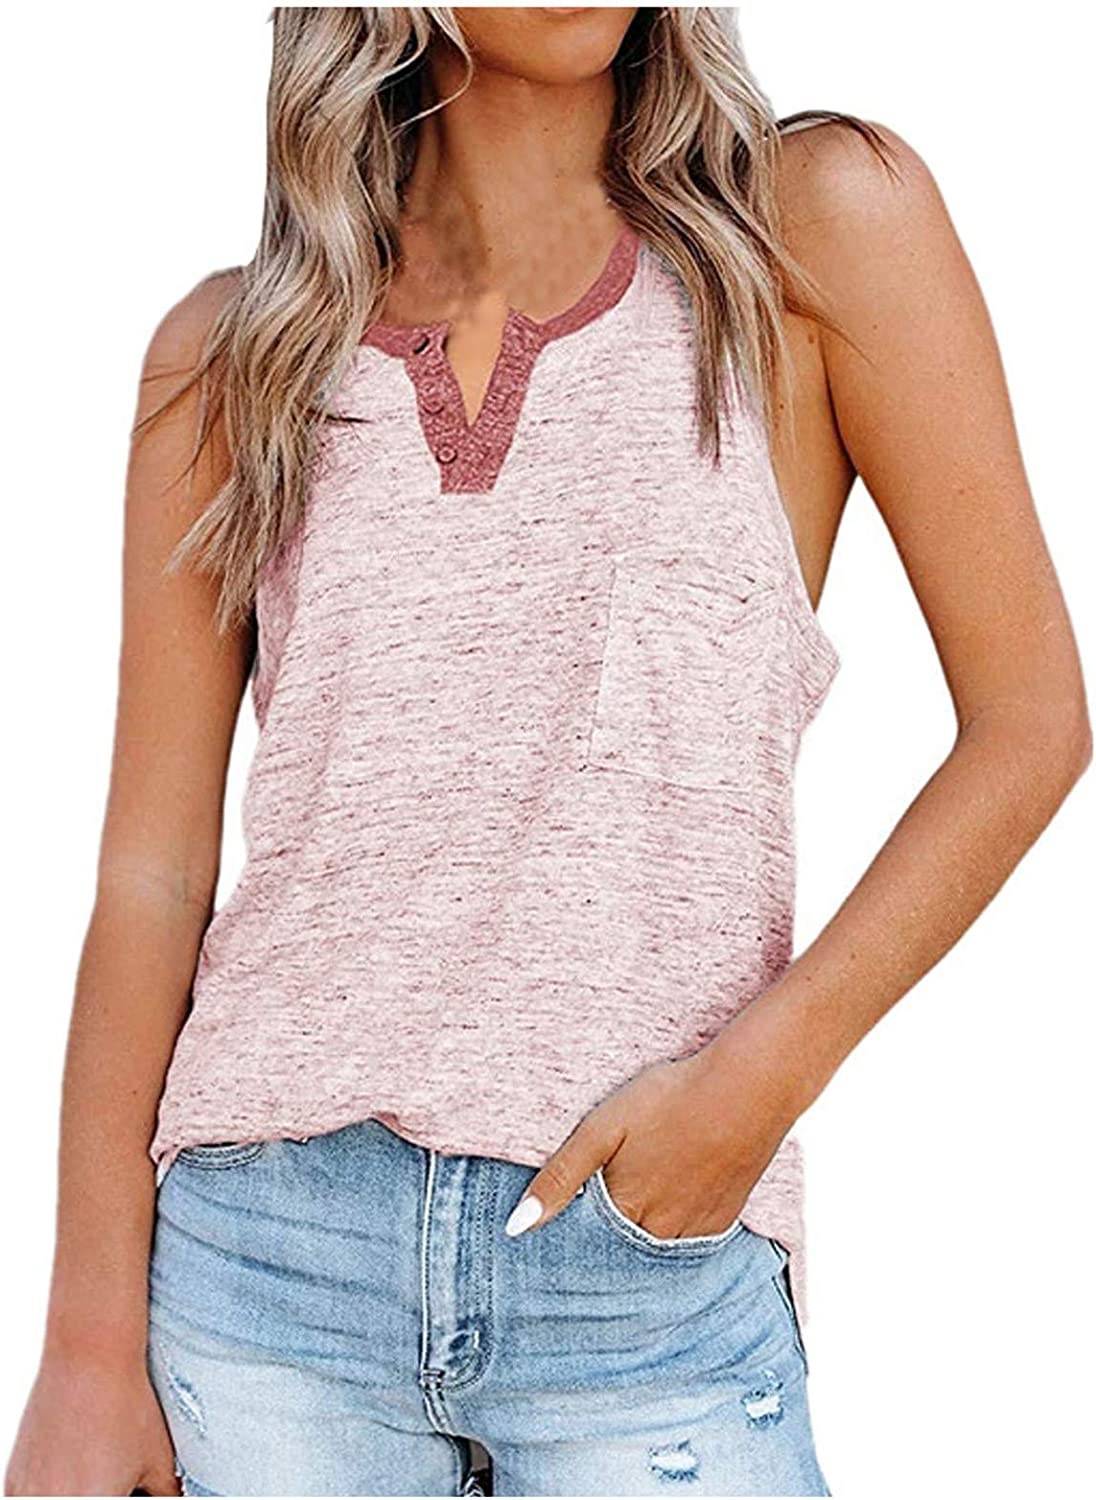 Sayhi Fashion Women''s Loose Shirts Vest Casual Print Pocket Button Solid Color Sleeveless Tops Tank Tops